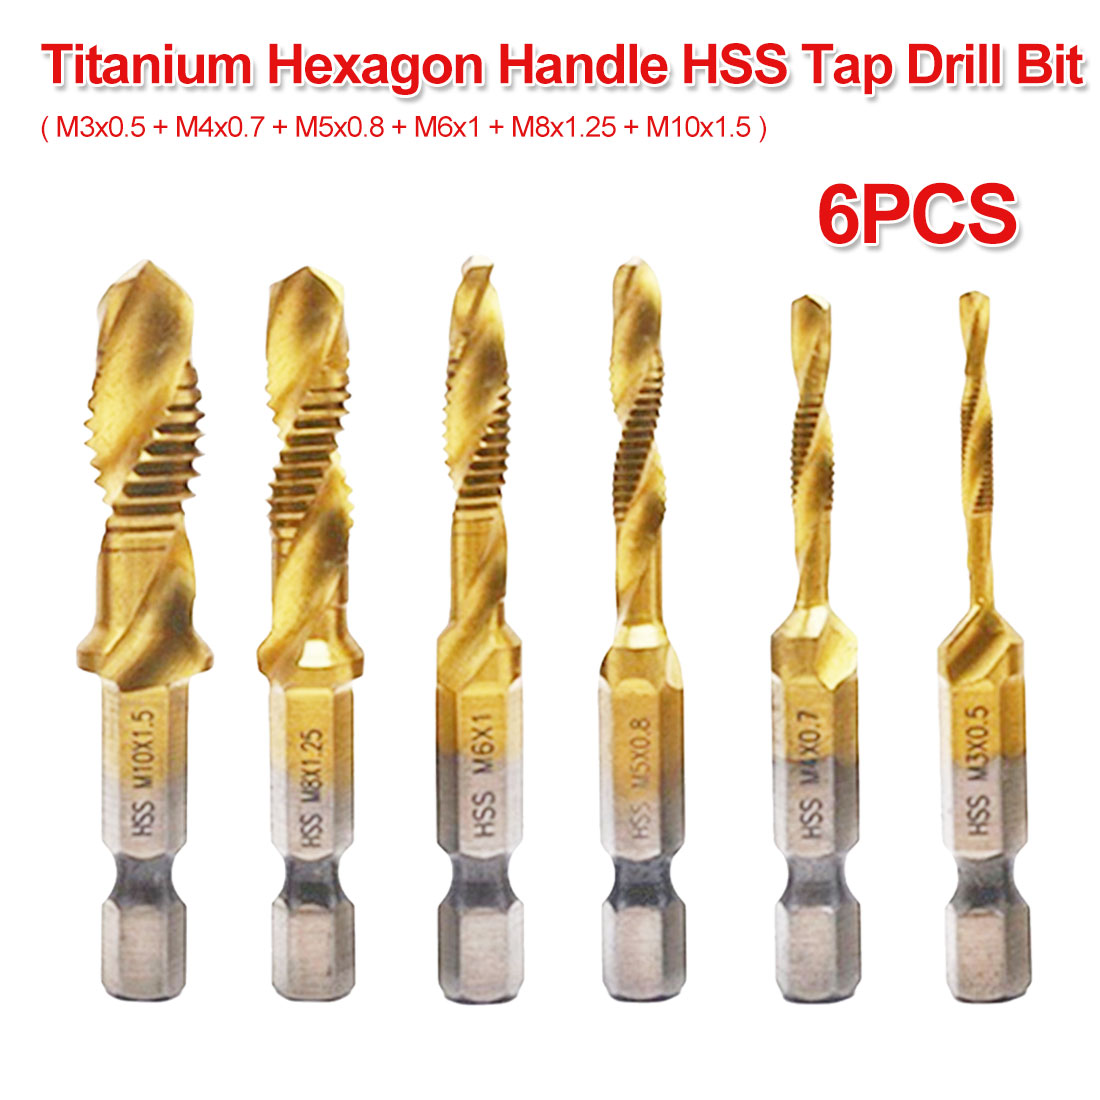 6pcs Twist Drill Bit Set 1/4 Hex Shank M3 M4 M5 M6 M8 M10 Titanium Coated HSS Drilling Tap Bit Thread Screw Tool For Soft Metal